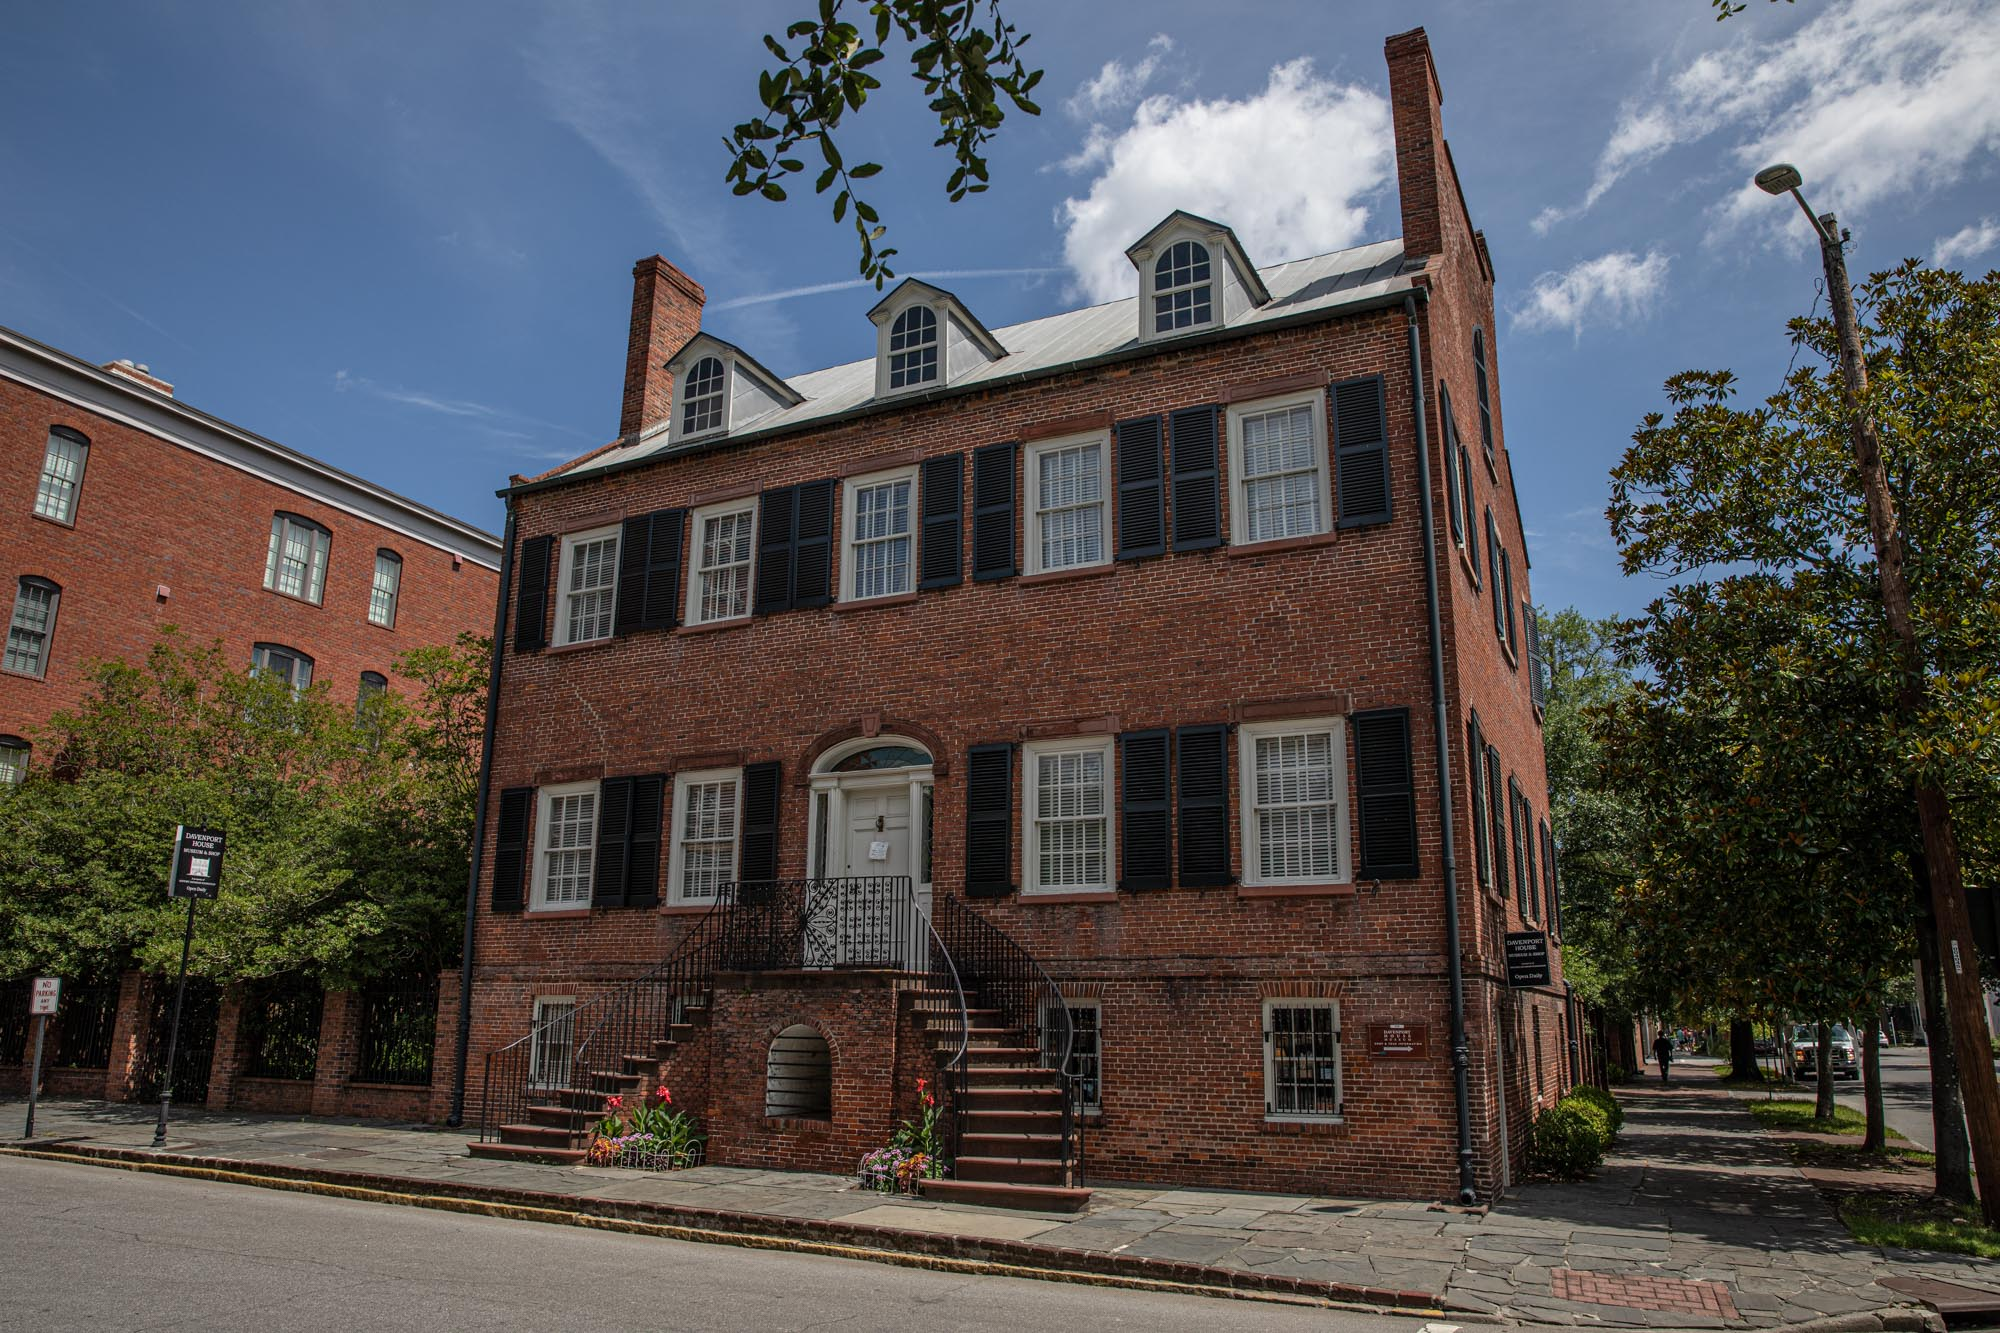 The Davenport house  Master builder Isaiah Davenport, a native of New England, designed and built the Federalist style home as a dwelling for his growing household as well as a demonstration of his building skills in 1820-1821.